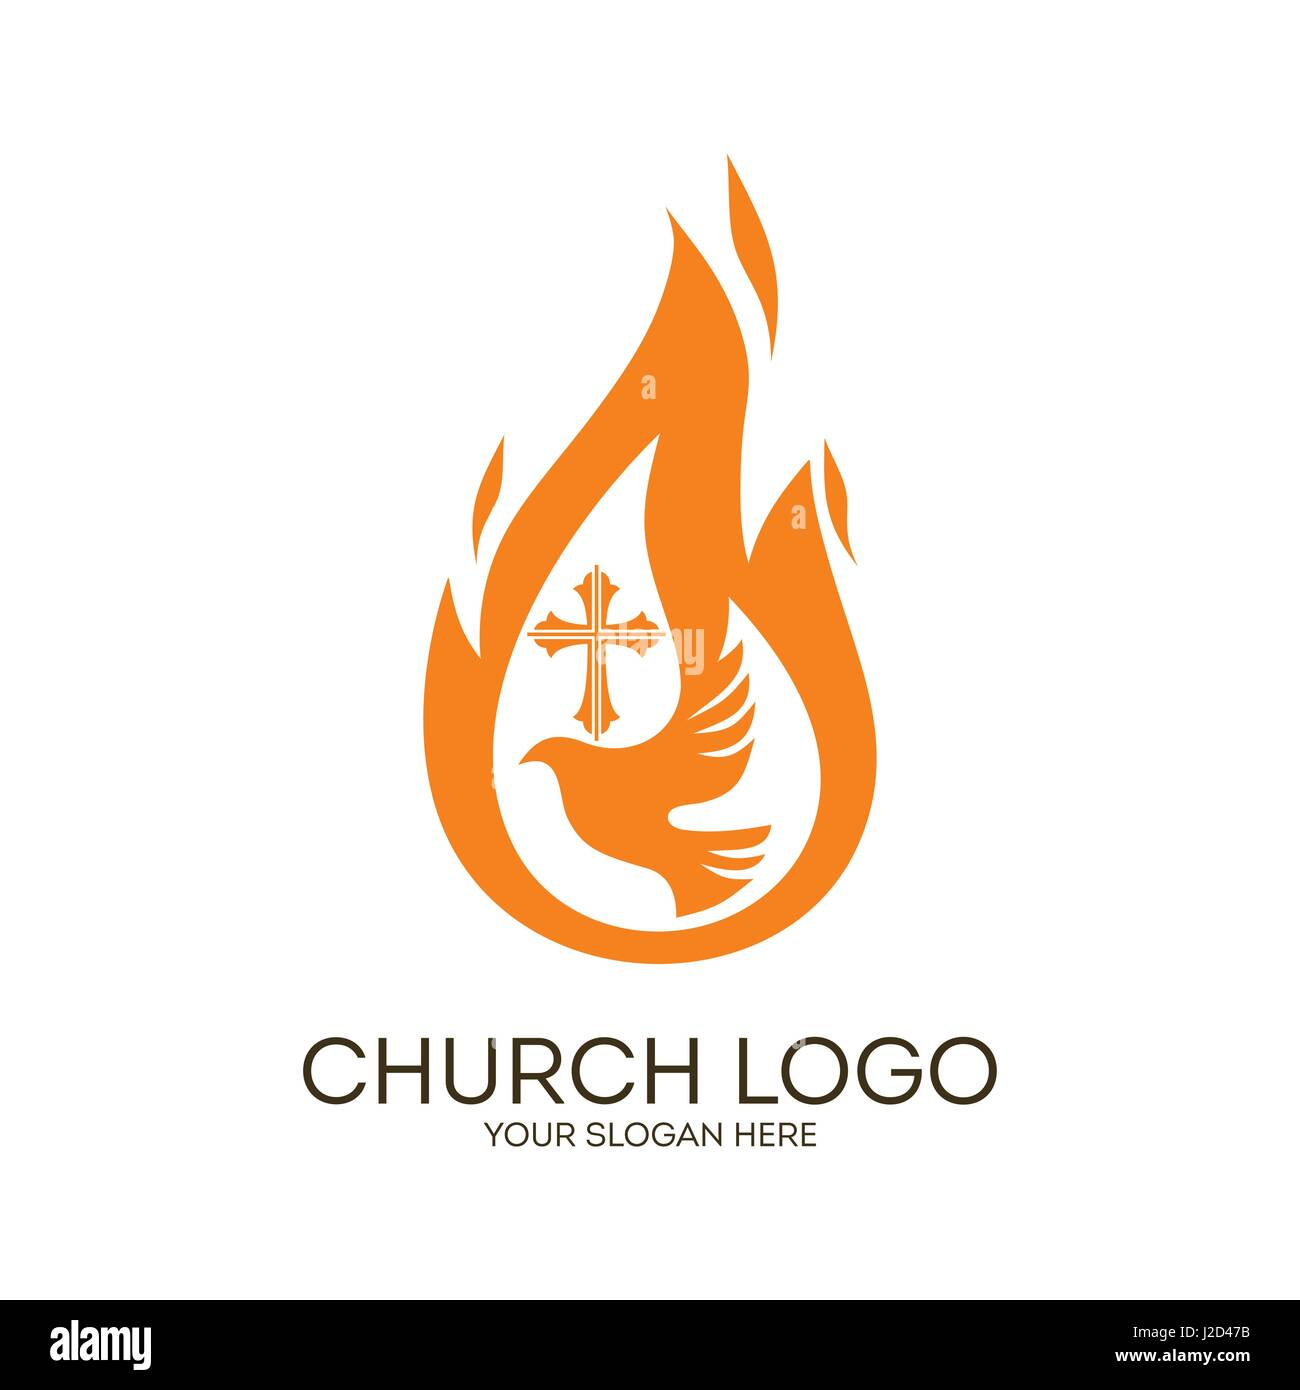 Church logo christian symbols dove the flame of the holy spirit church logo christian symbols dove the flame of the holy spirit and the cross of jesus altavistaventures Images